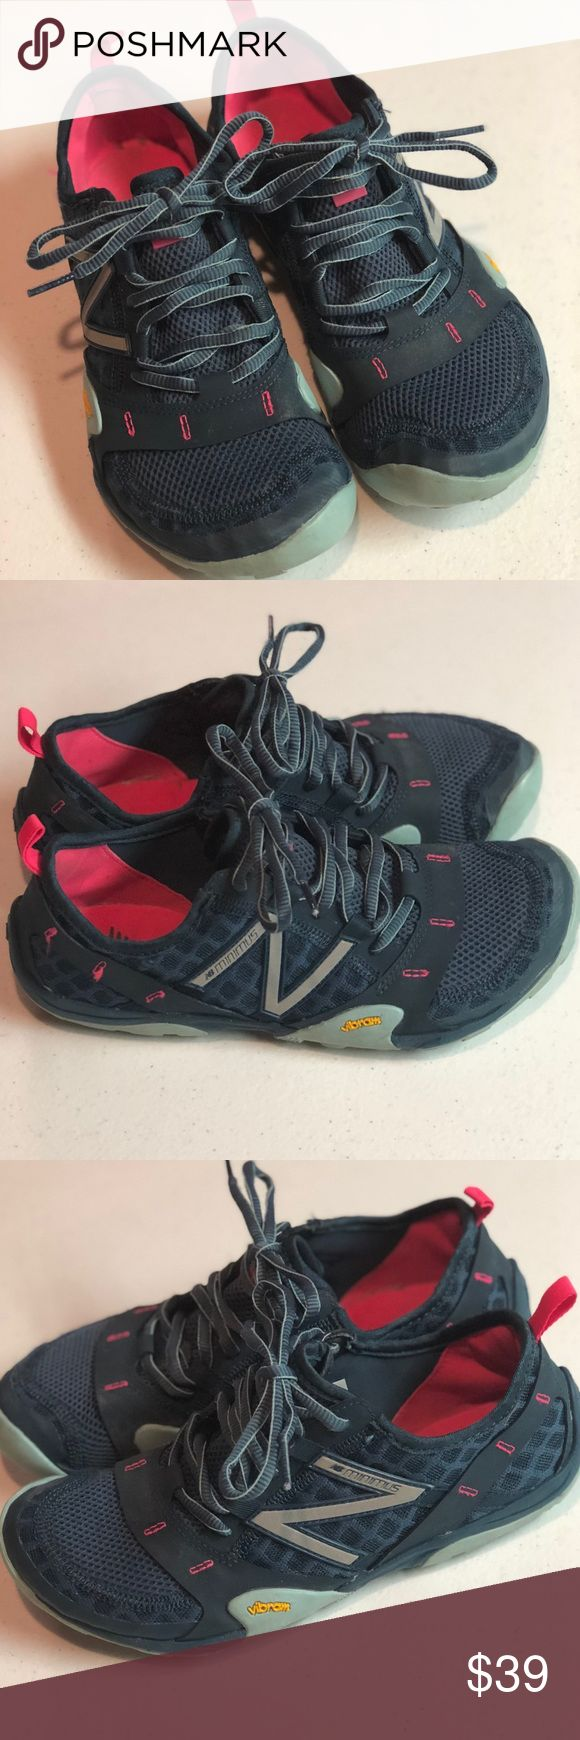 New Balance Blue/Pink Minimus Shoes, 7.5 Great used condition.  These will fit those who wear a 7.5 who sometimes wear a 7.  They will not fit if you wear a 7.5 and sometimes wear an 8.  Tons of life left as I have not worn them often. New Balance Shoes Athletic Shoes